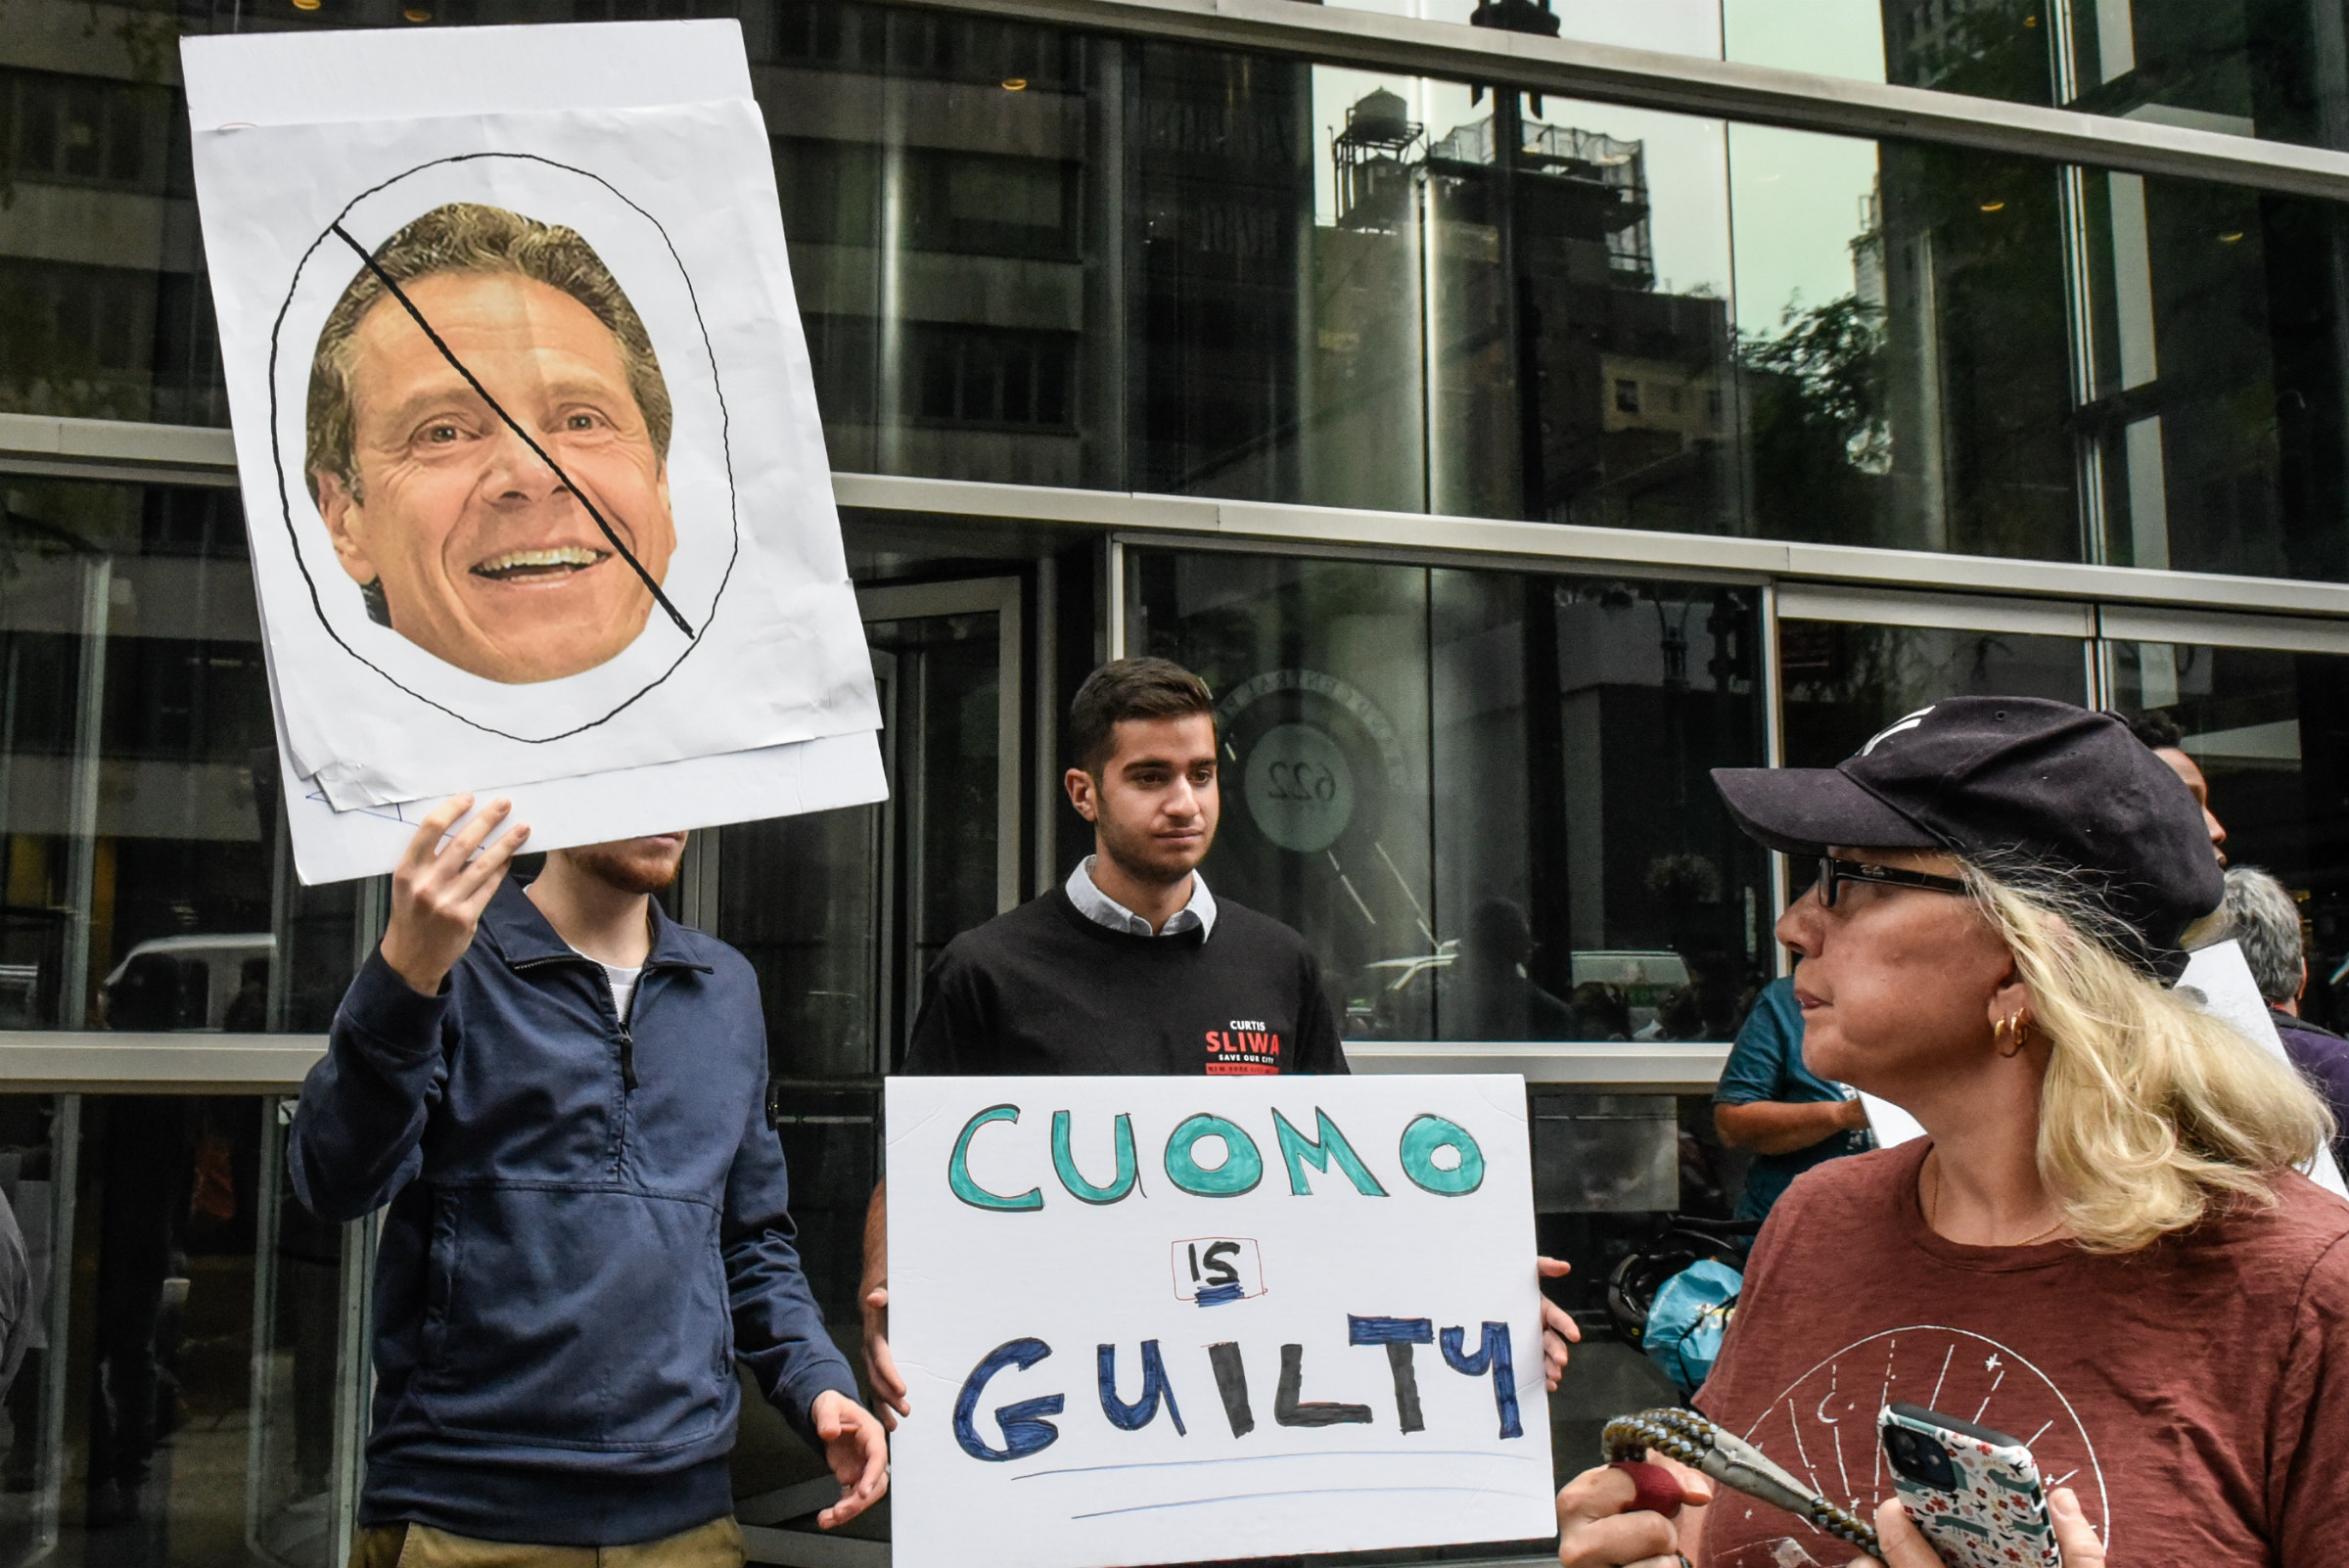 a protestor in a navy blue windbreaker holds up a poster of Andrew Cuomo, an aging white man with short, curly, brown hair, during a protest